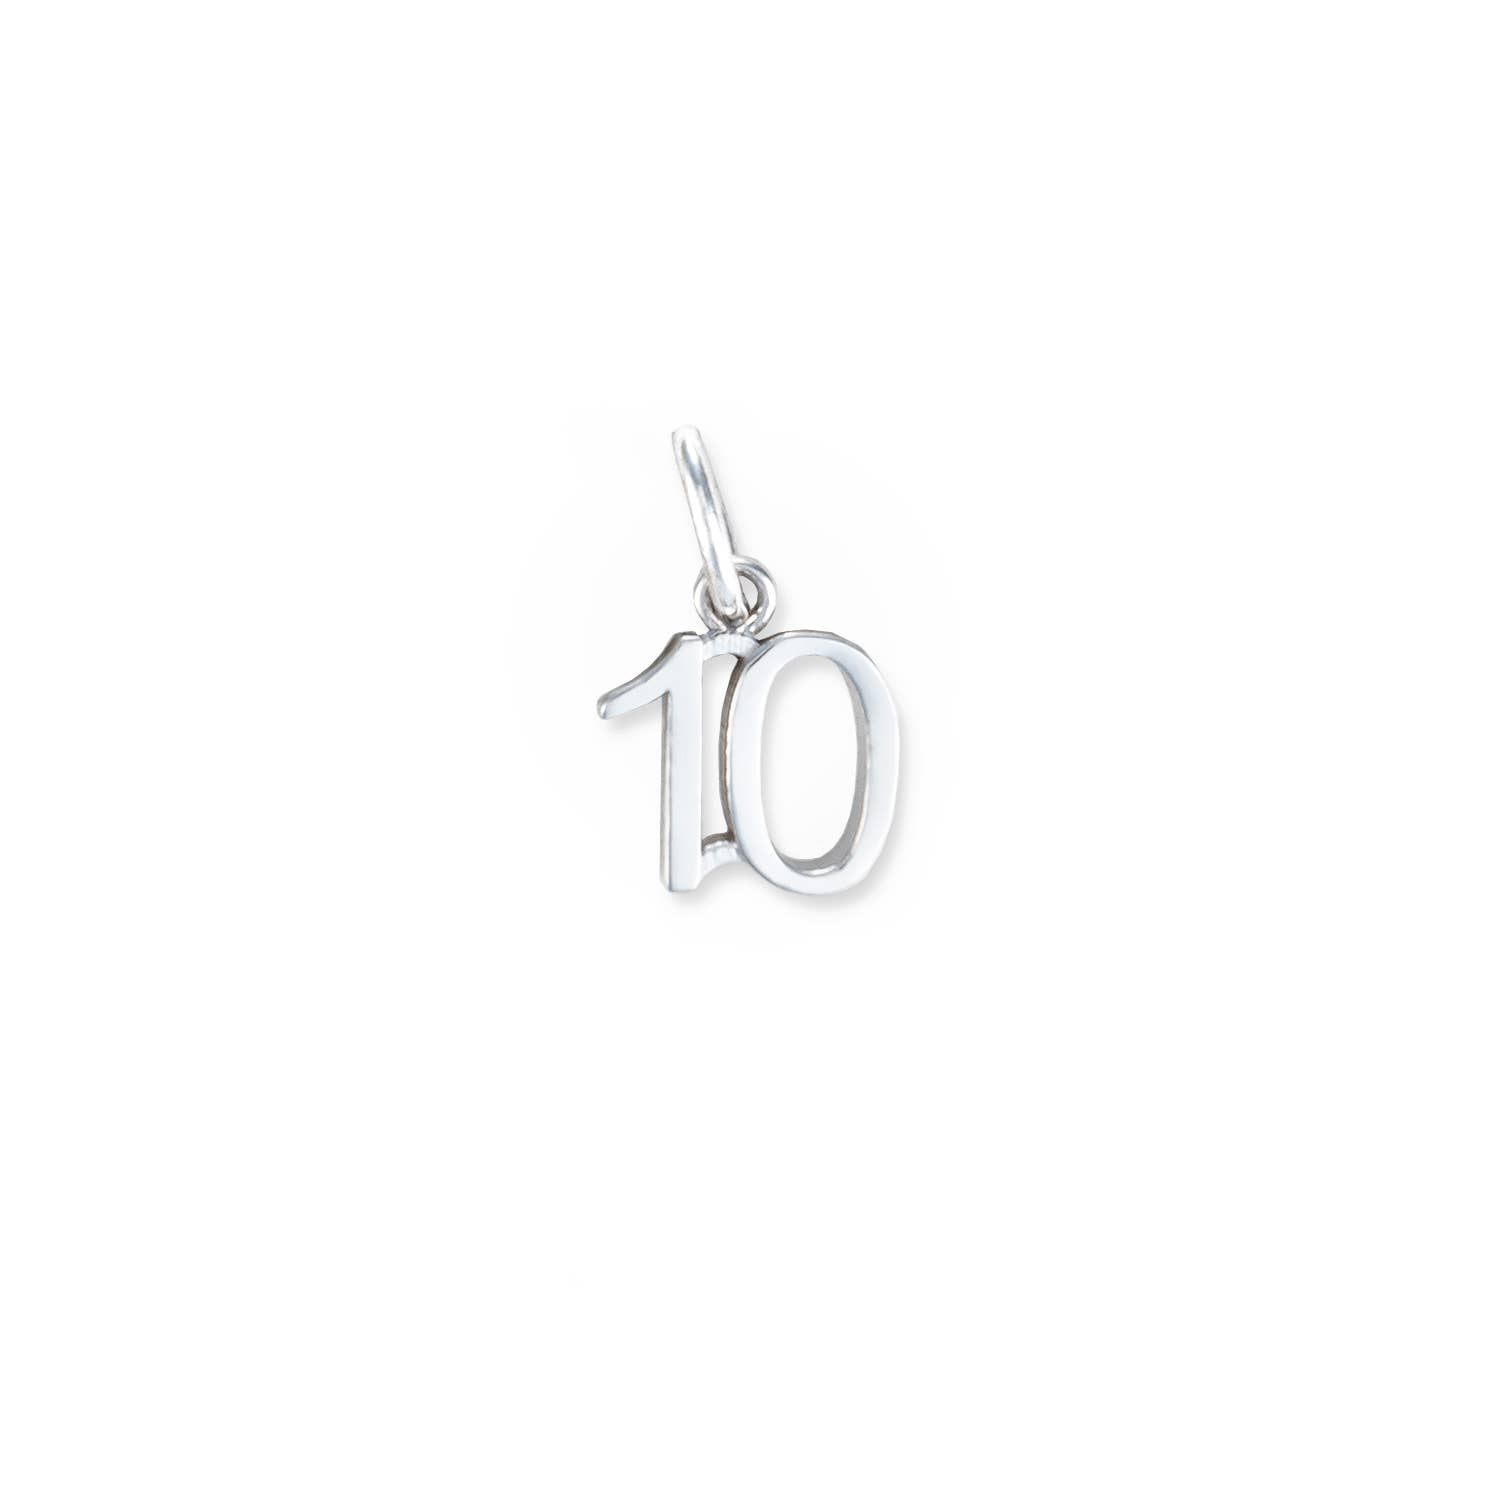 Susan G Komen Shining Strength Charm available in sterling silver by Tacori